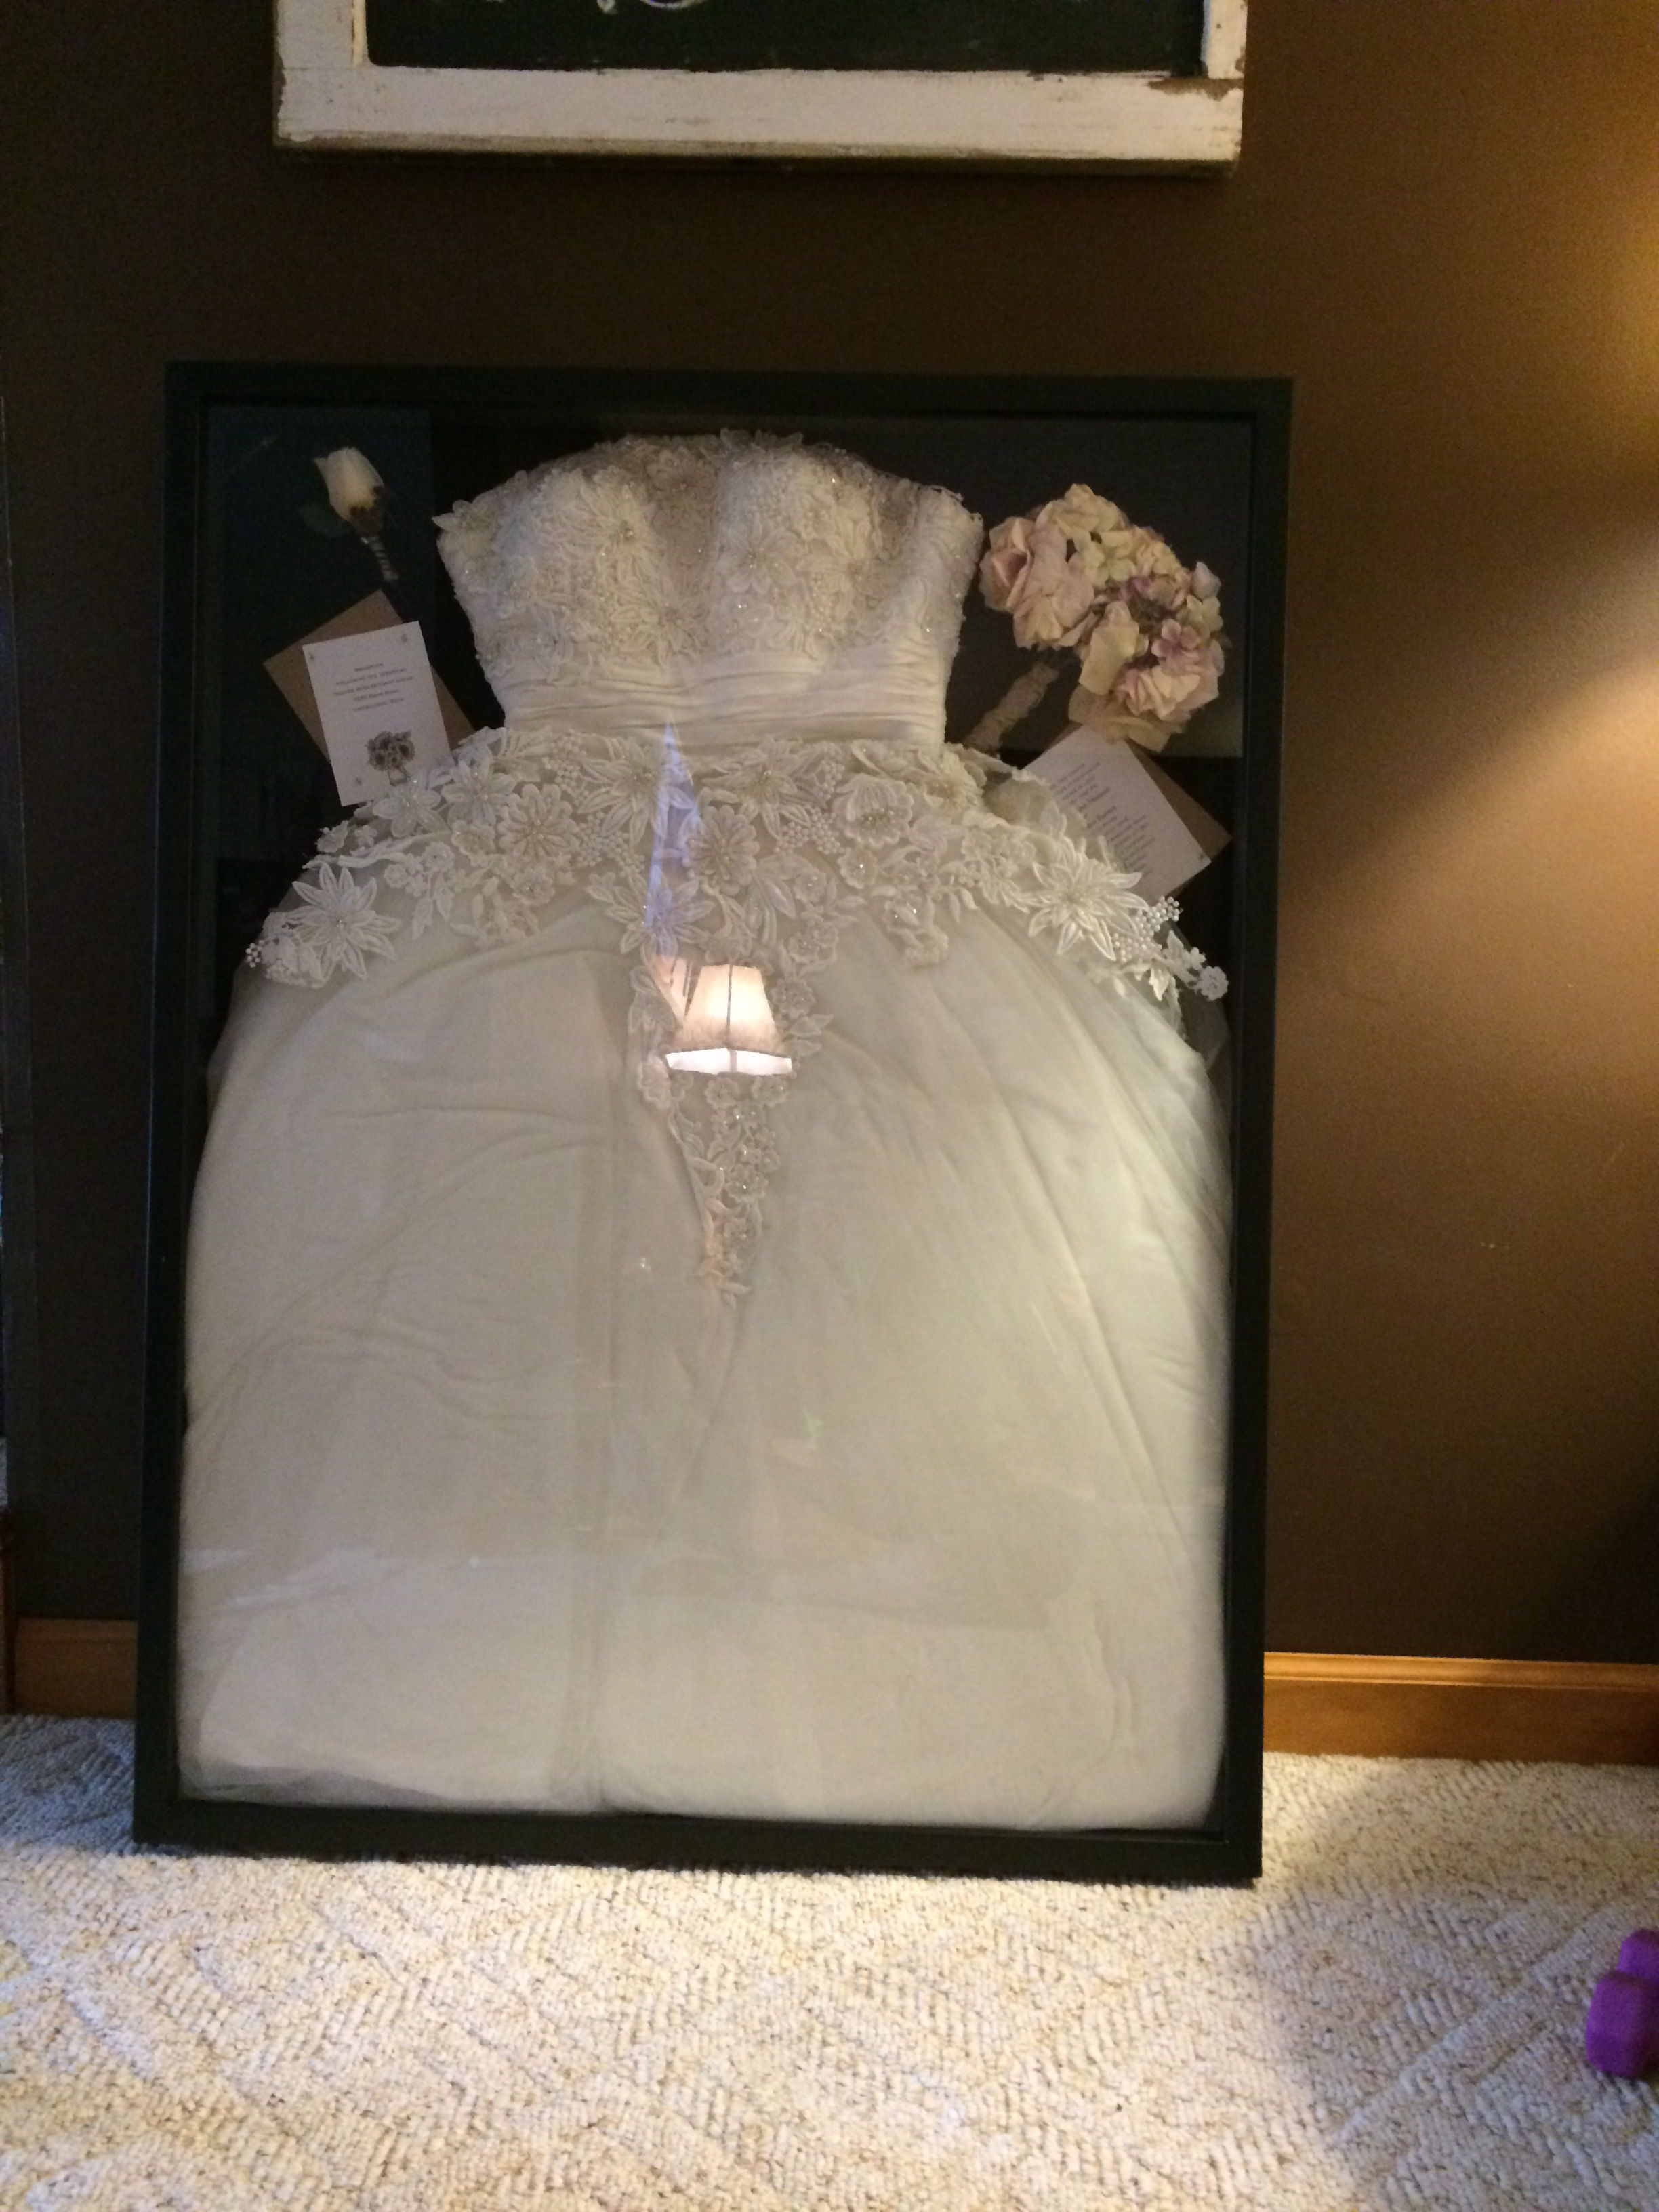 Wedding dress in a shadow box get the largest one from hobby lobby ...